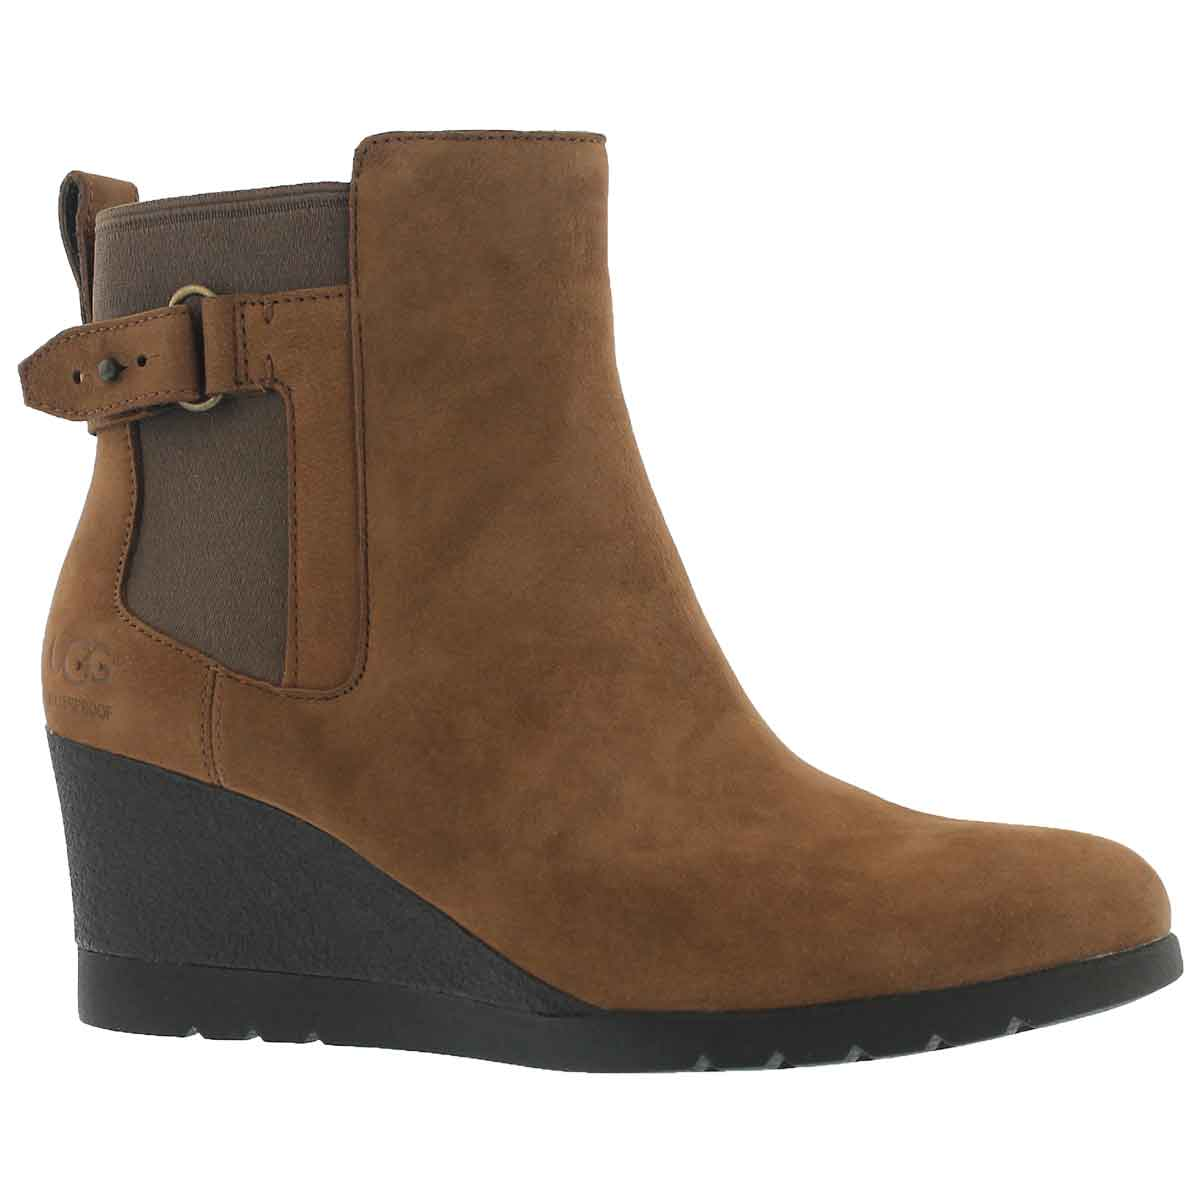 Women's INDRA stout waterproof wedge ankle boots